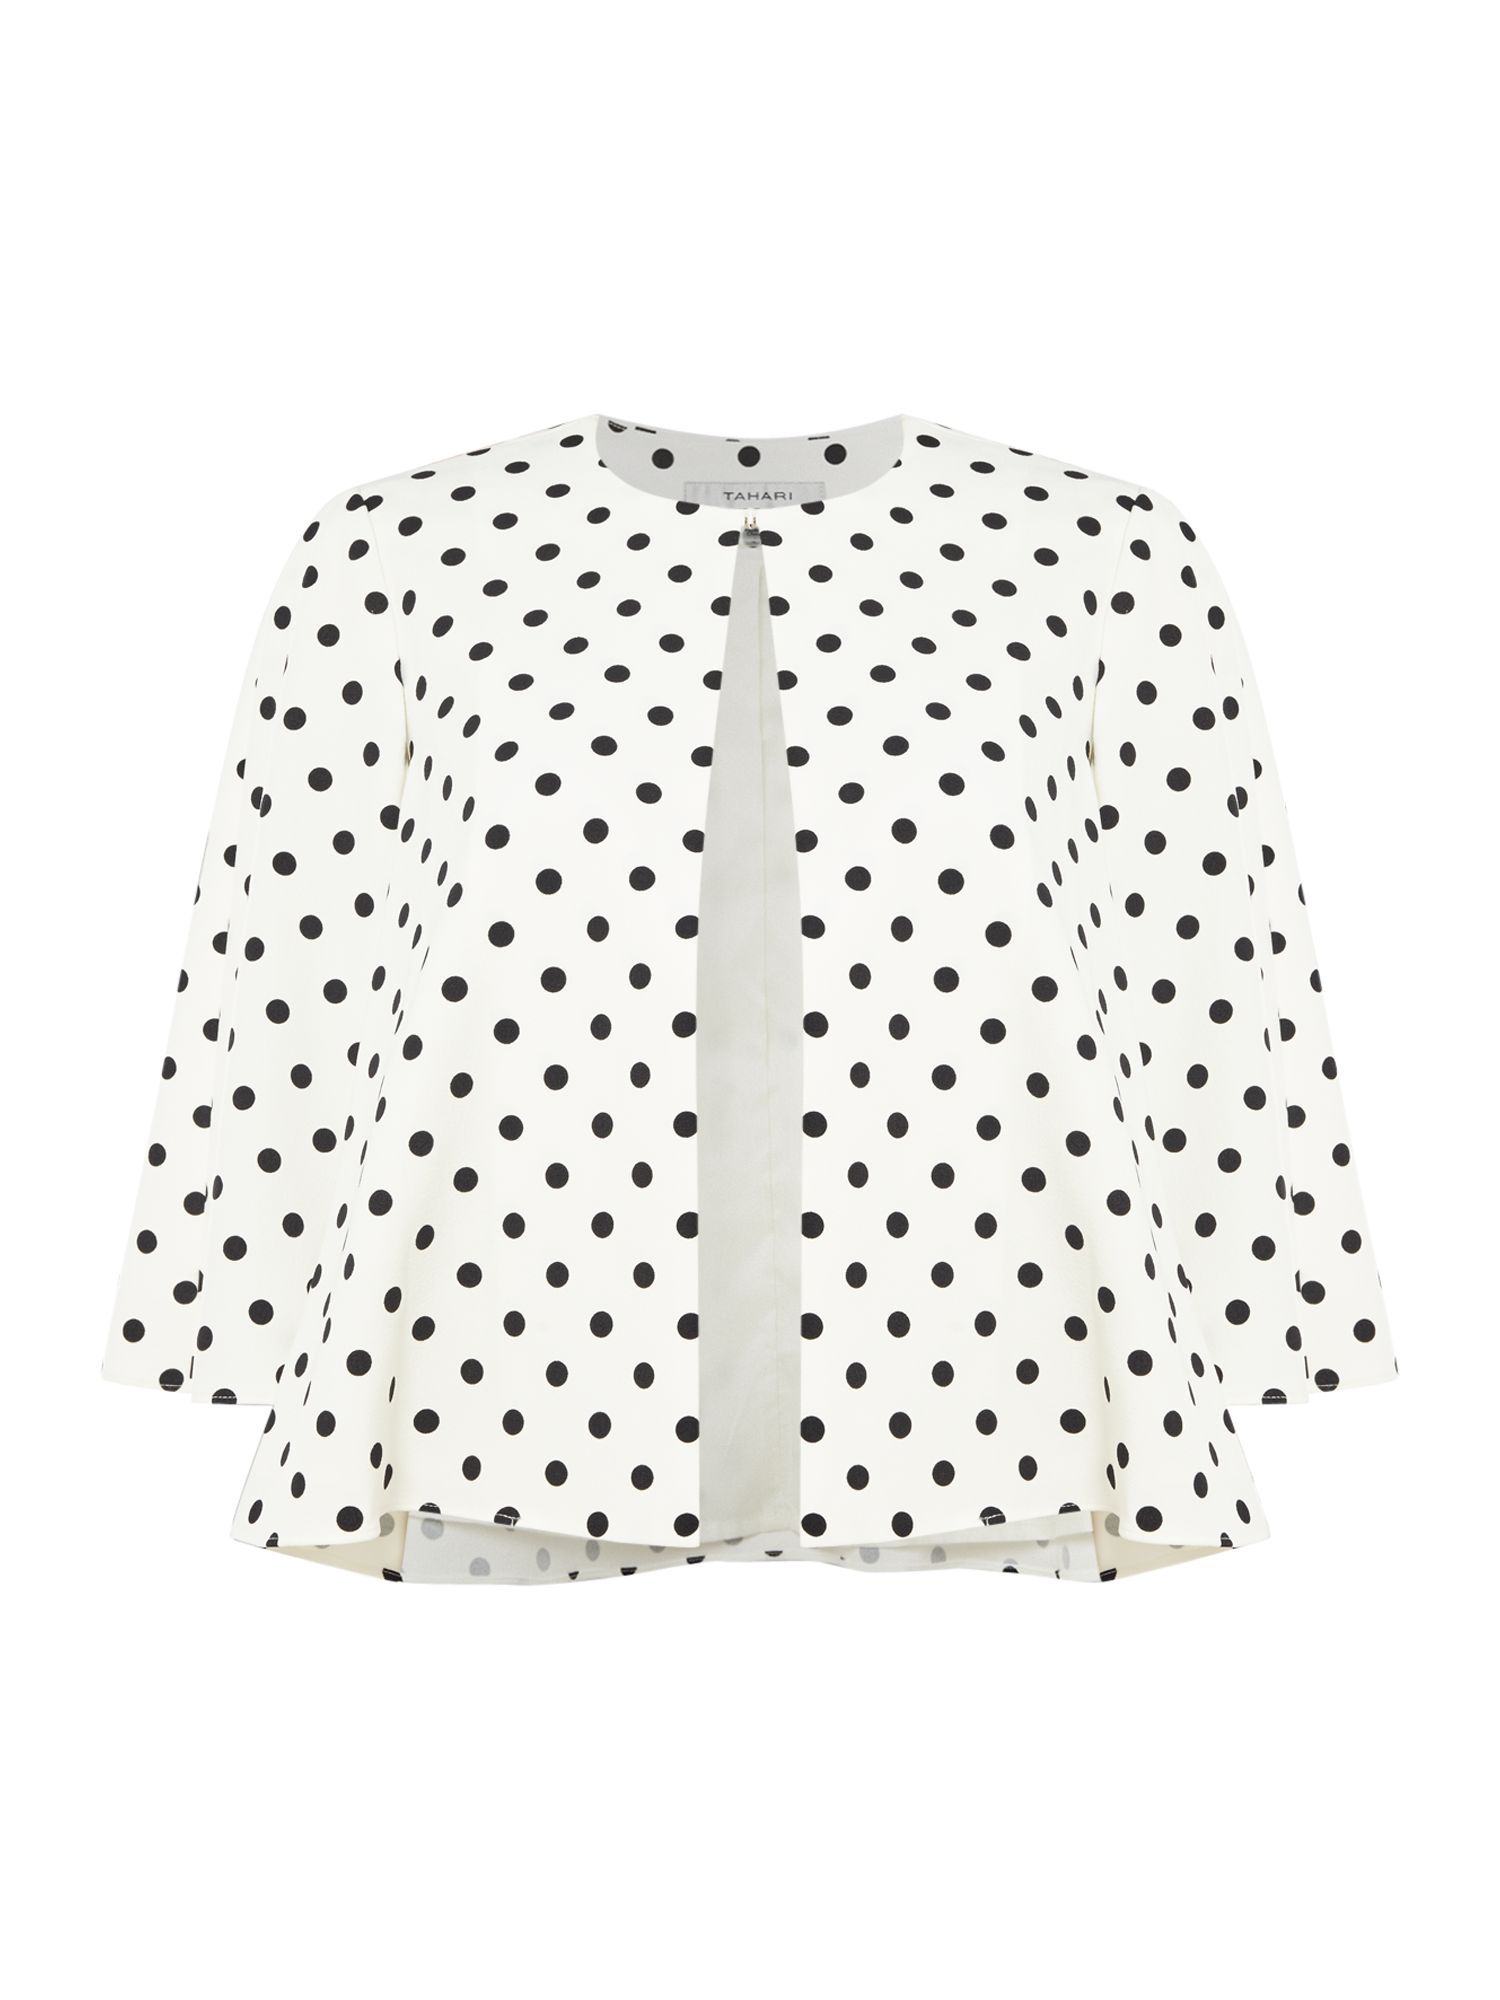 Tahari ASL Polka Dot Print 3/4 Sleeved Topper, Black/White